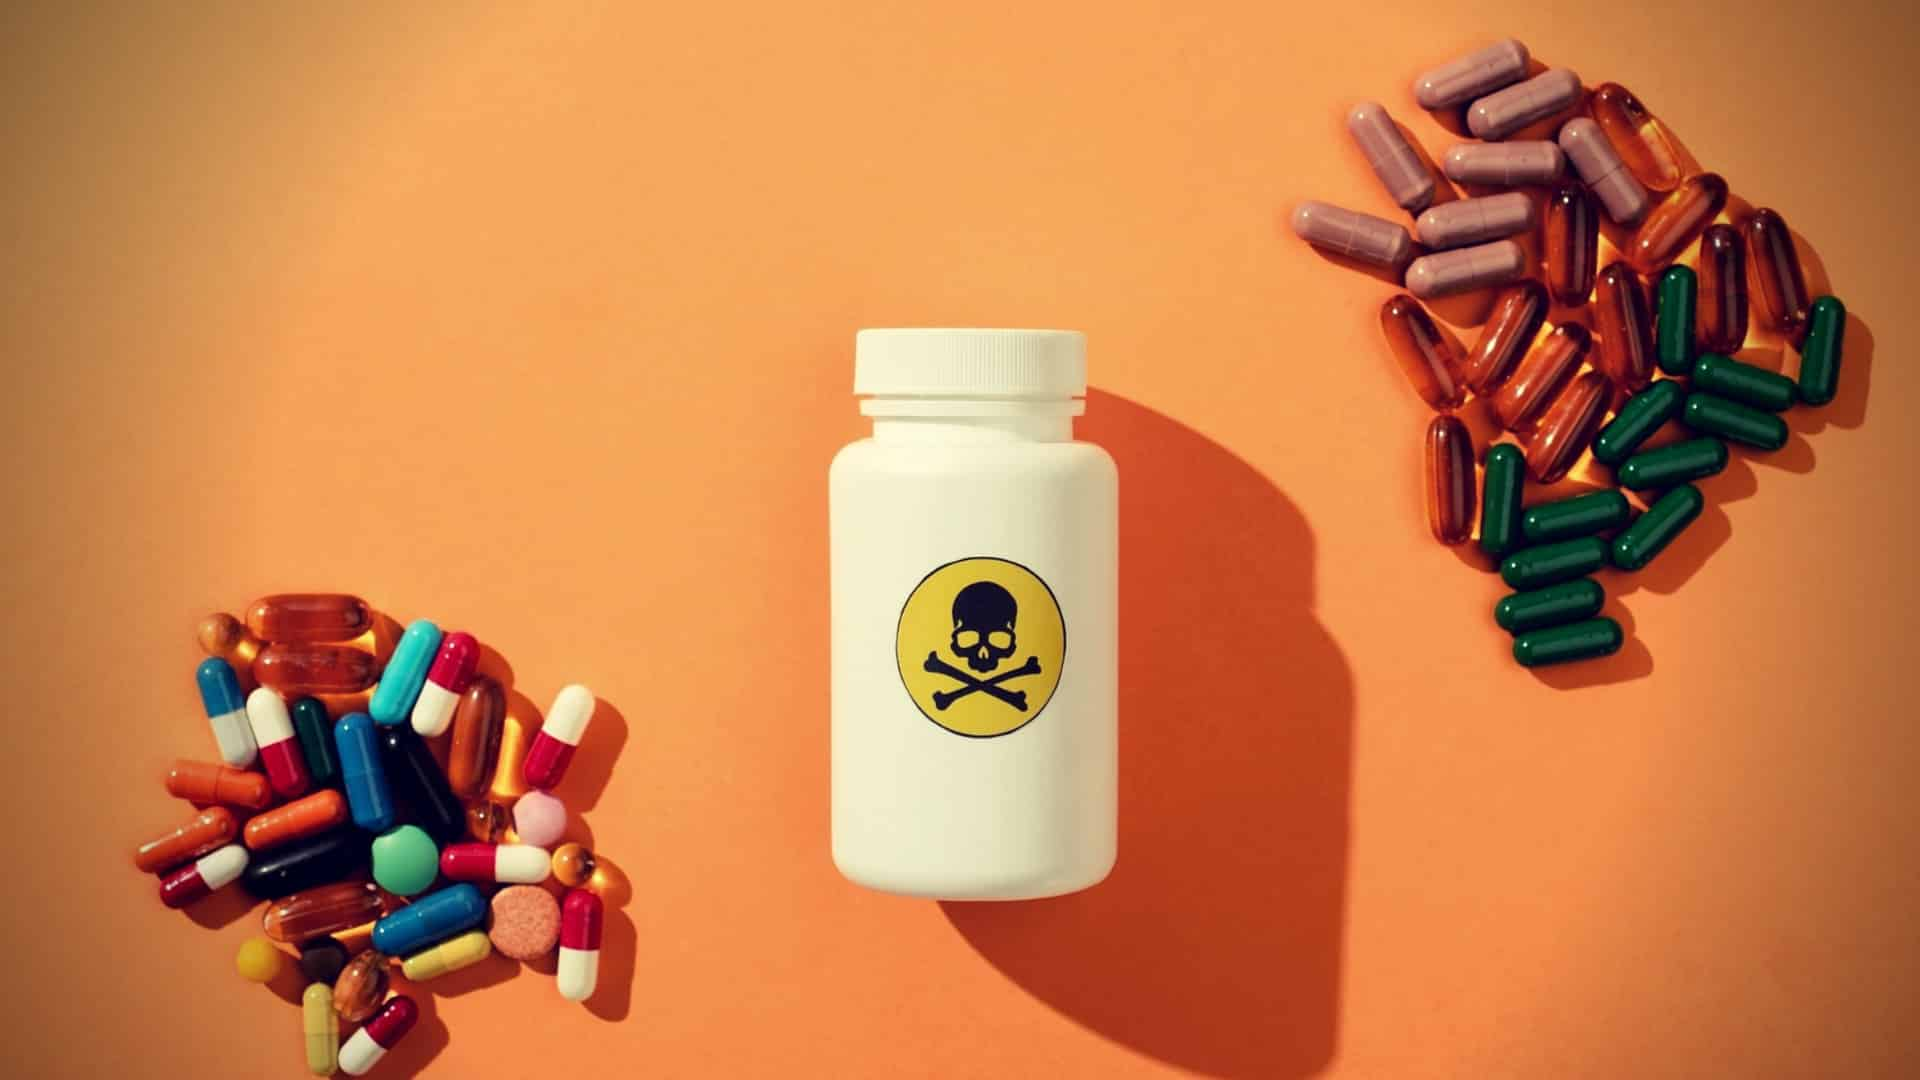 Top view of container with dangerous poison and food supplements